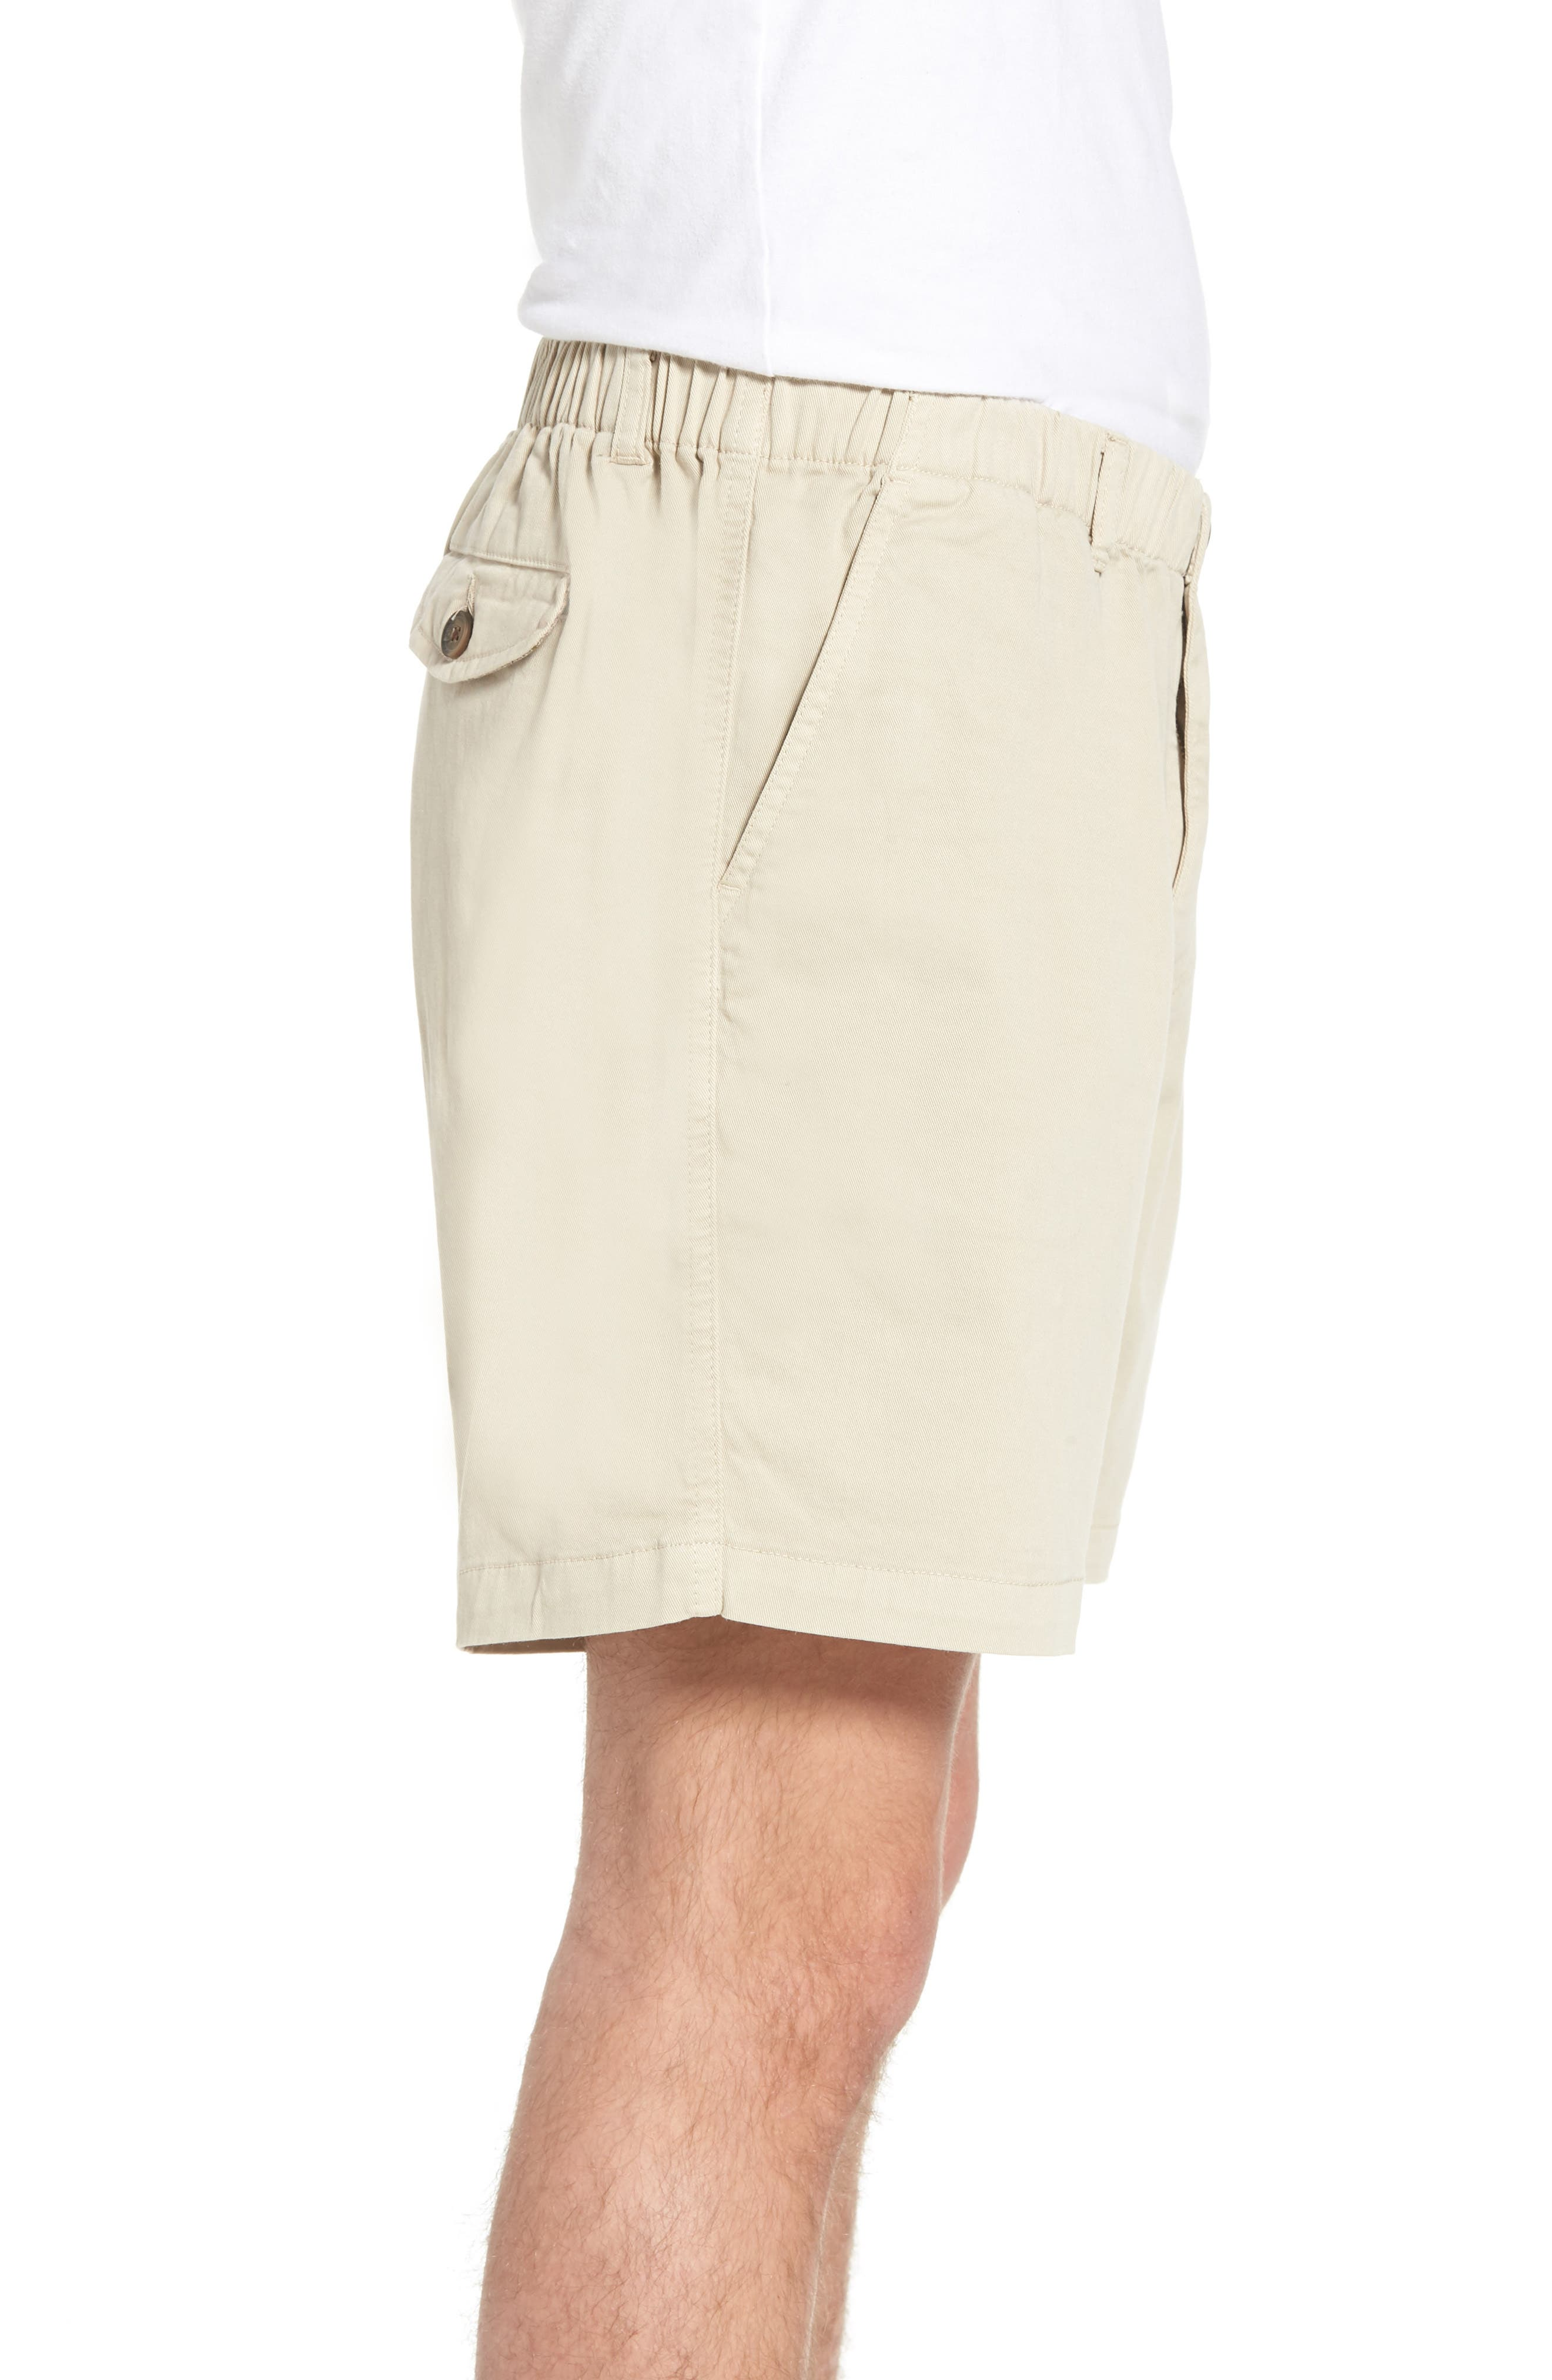 7in Snappers Elastic Waist Shorts,                             Alternate thumbnail 3, color,                             STONE